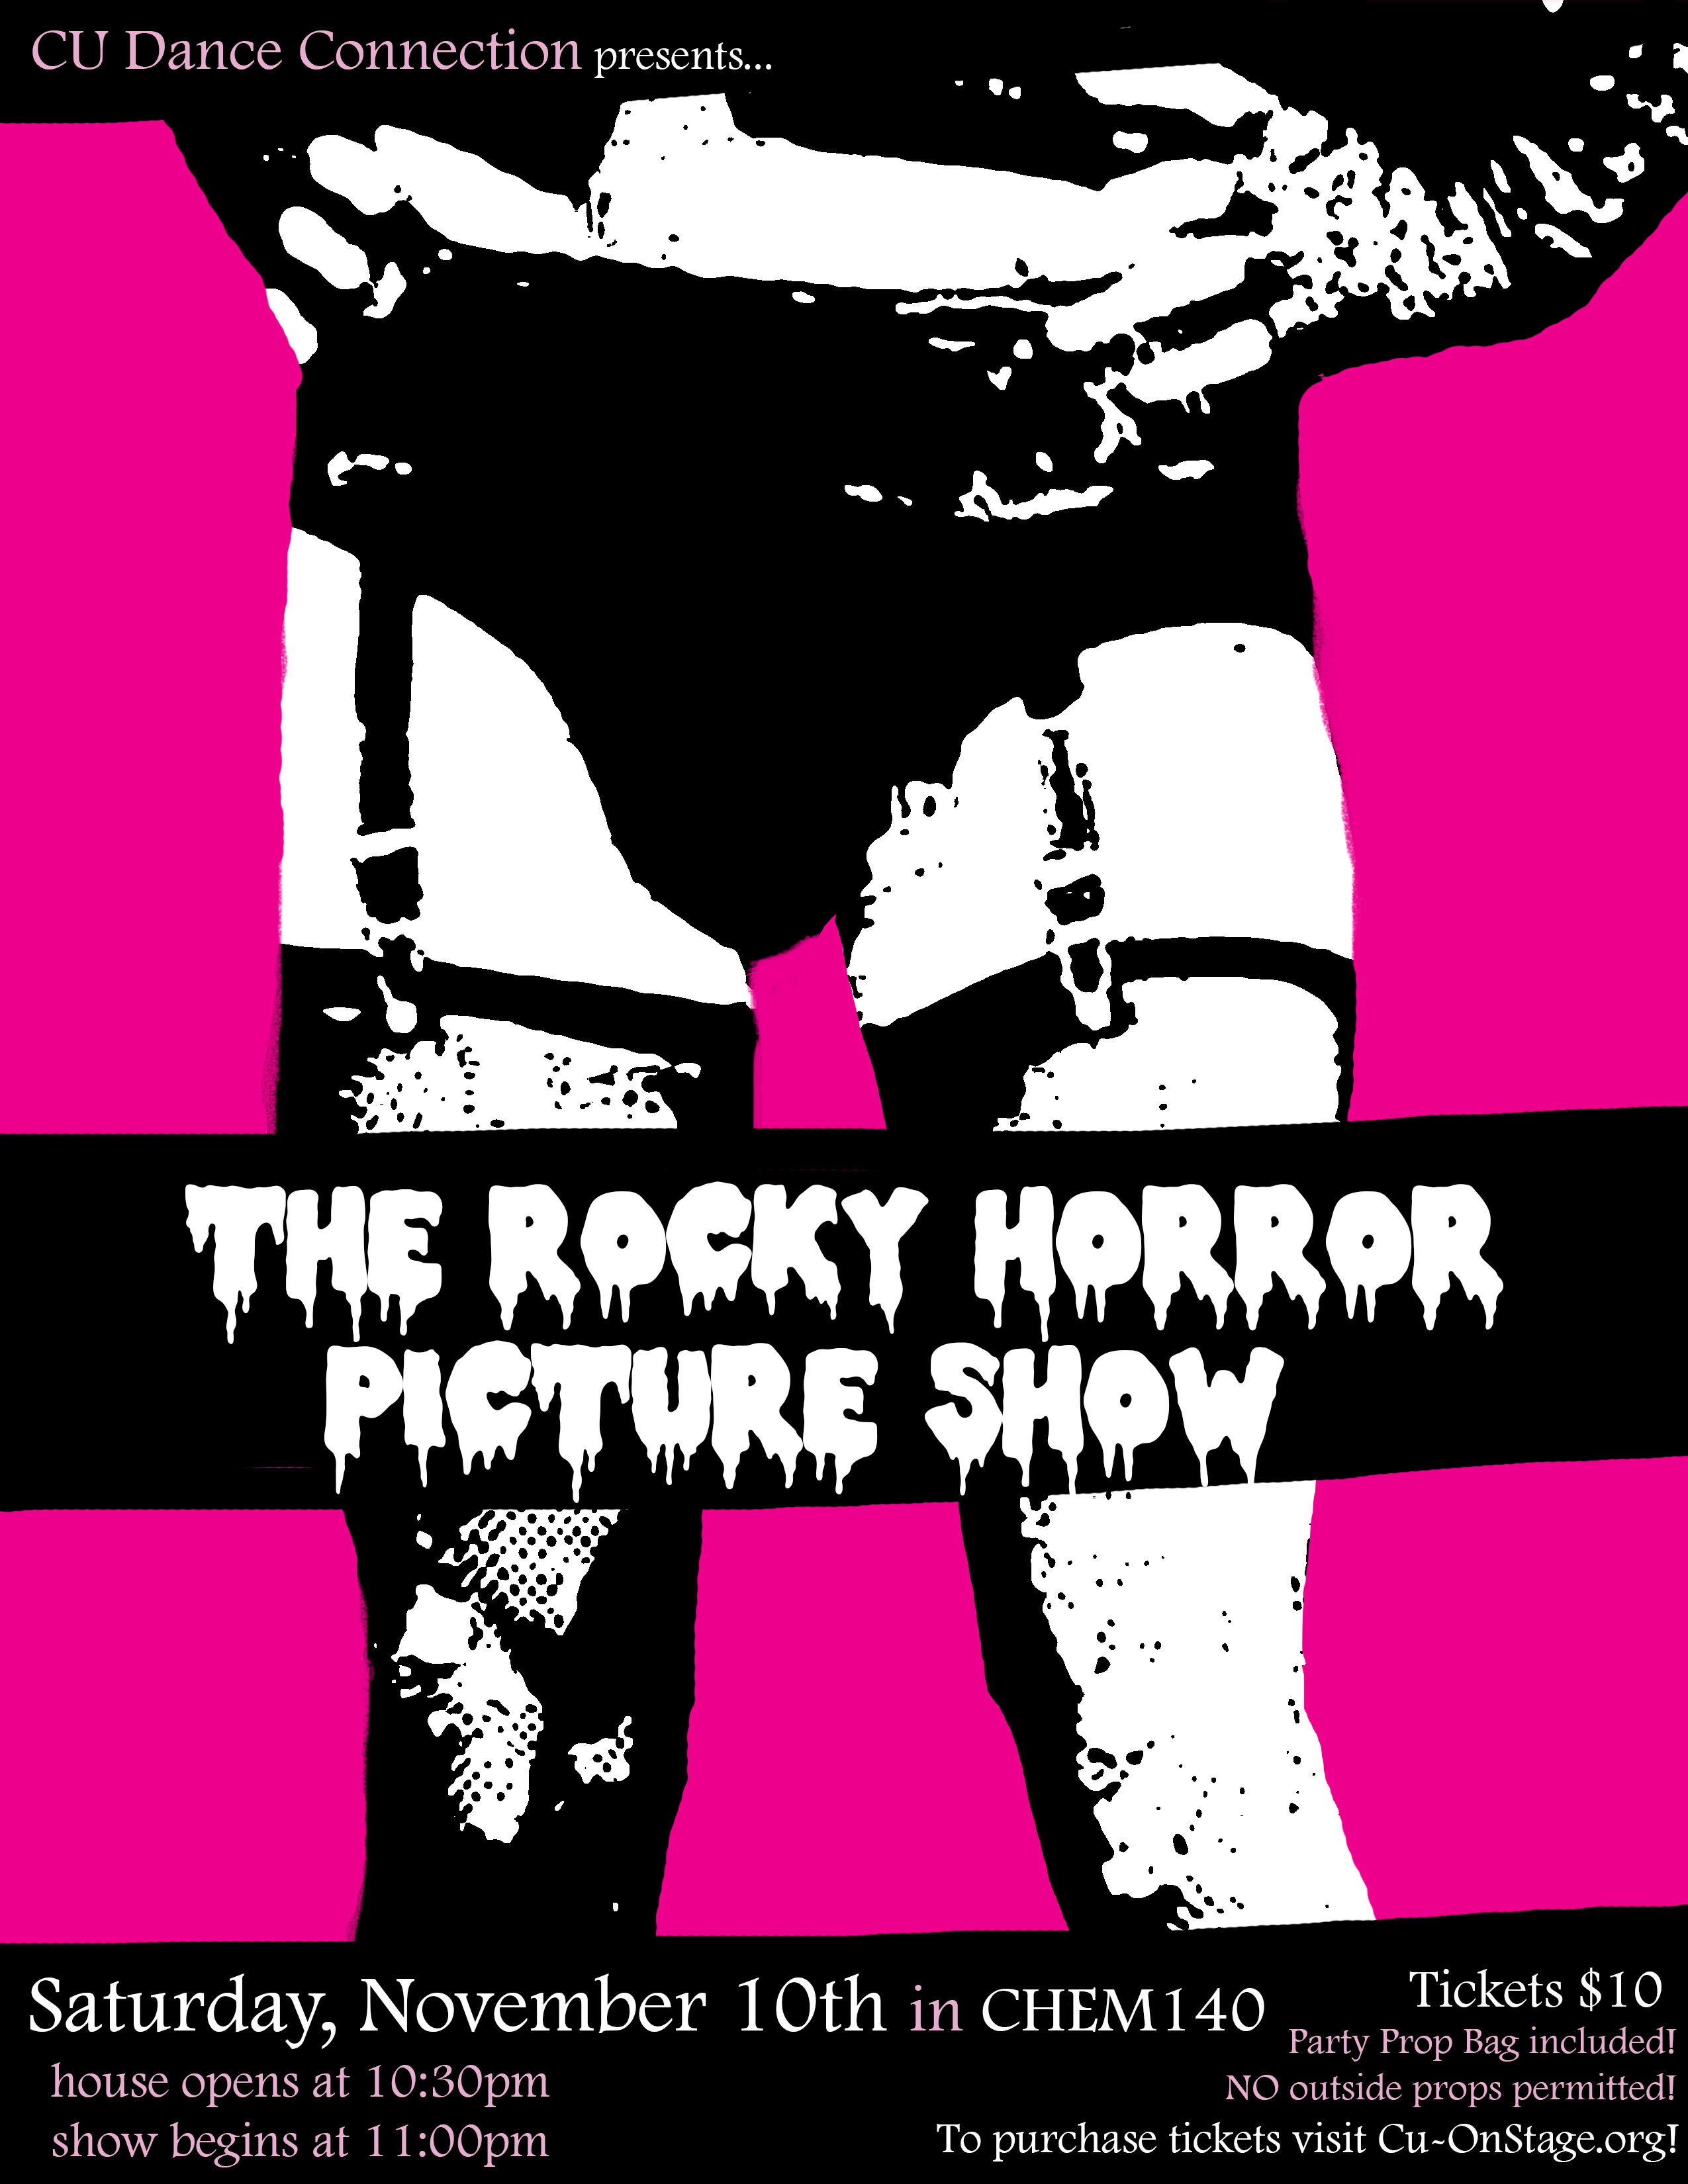 The Rocky Horror Picture Show 1975 Images